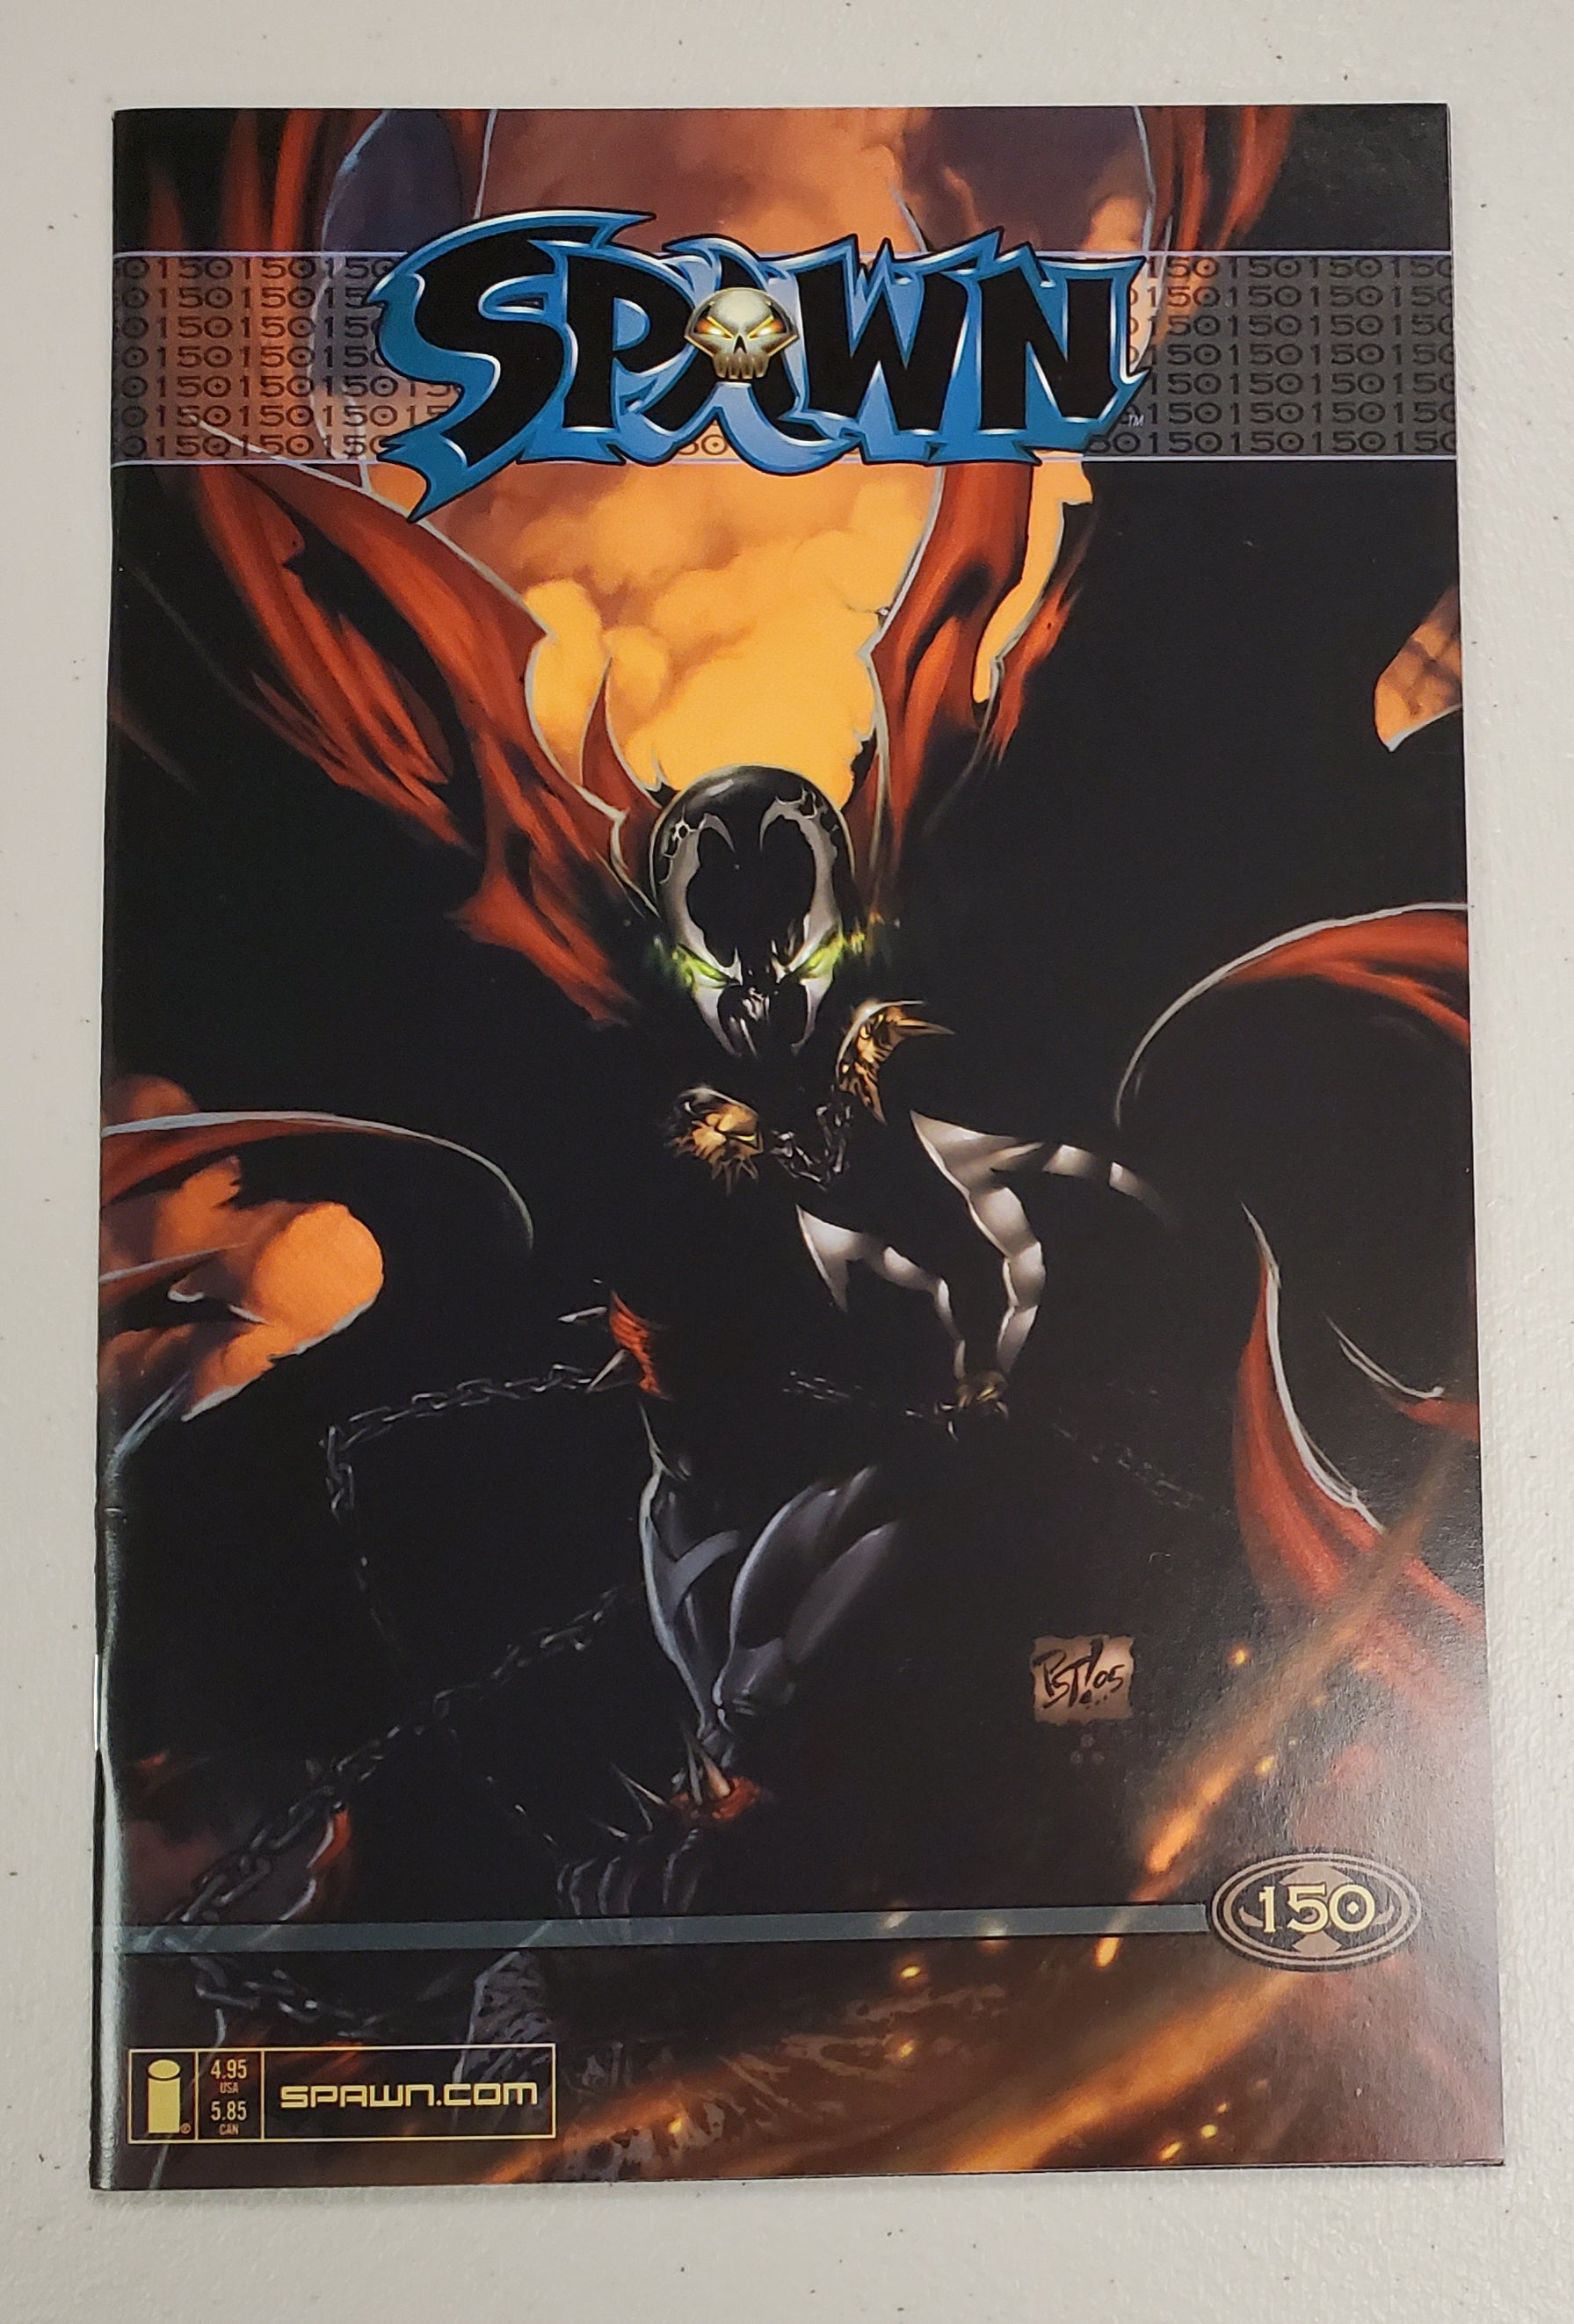 SPAWN #150 PHILIP TAN VARIANT 2005